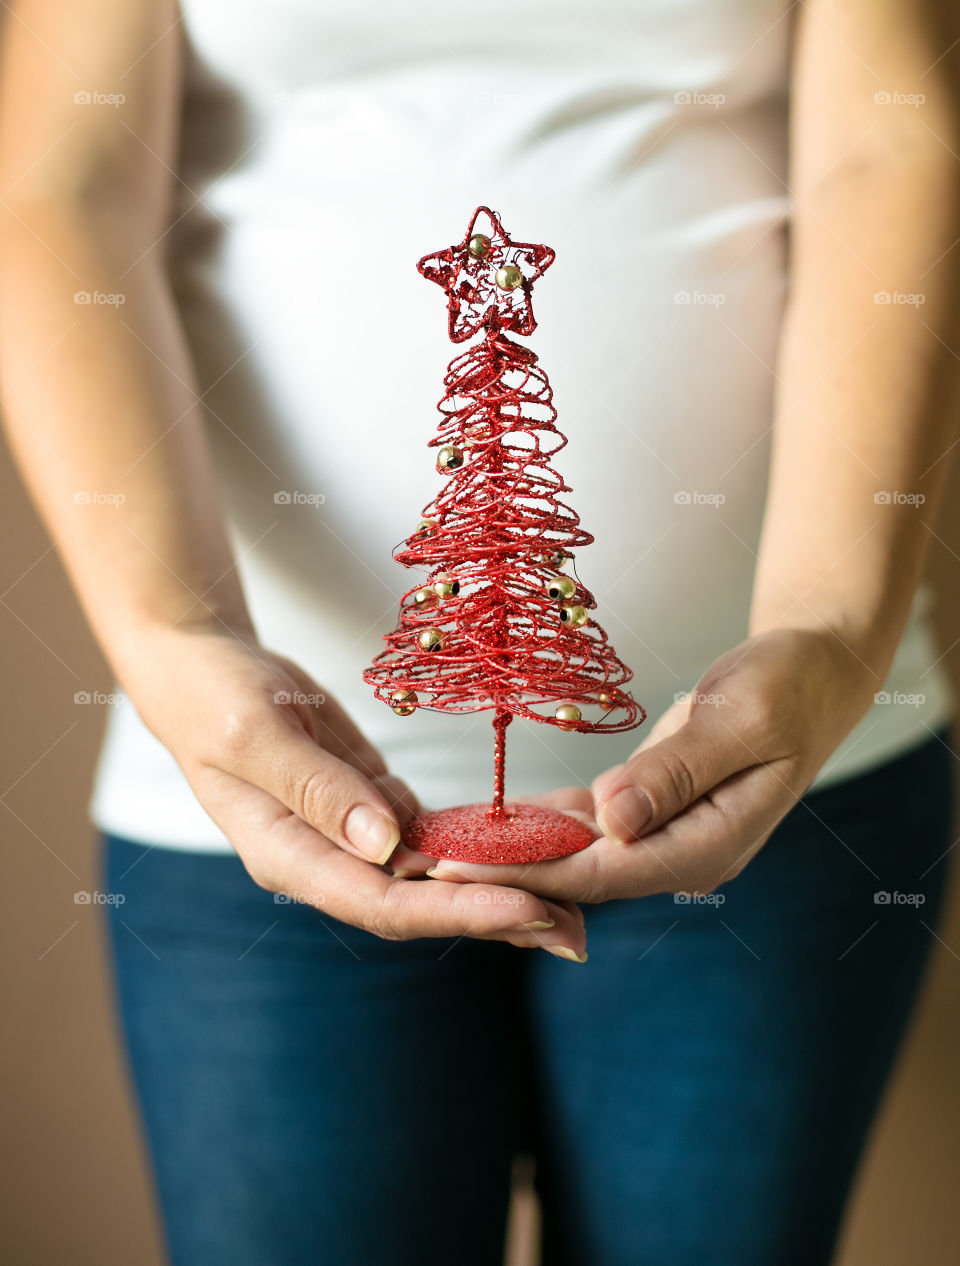 Midsection view of pregnant woman holding Christmas tree